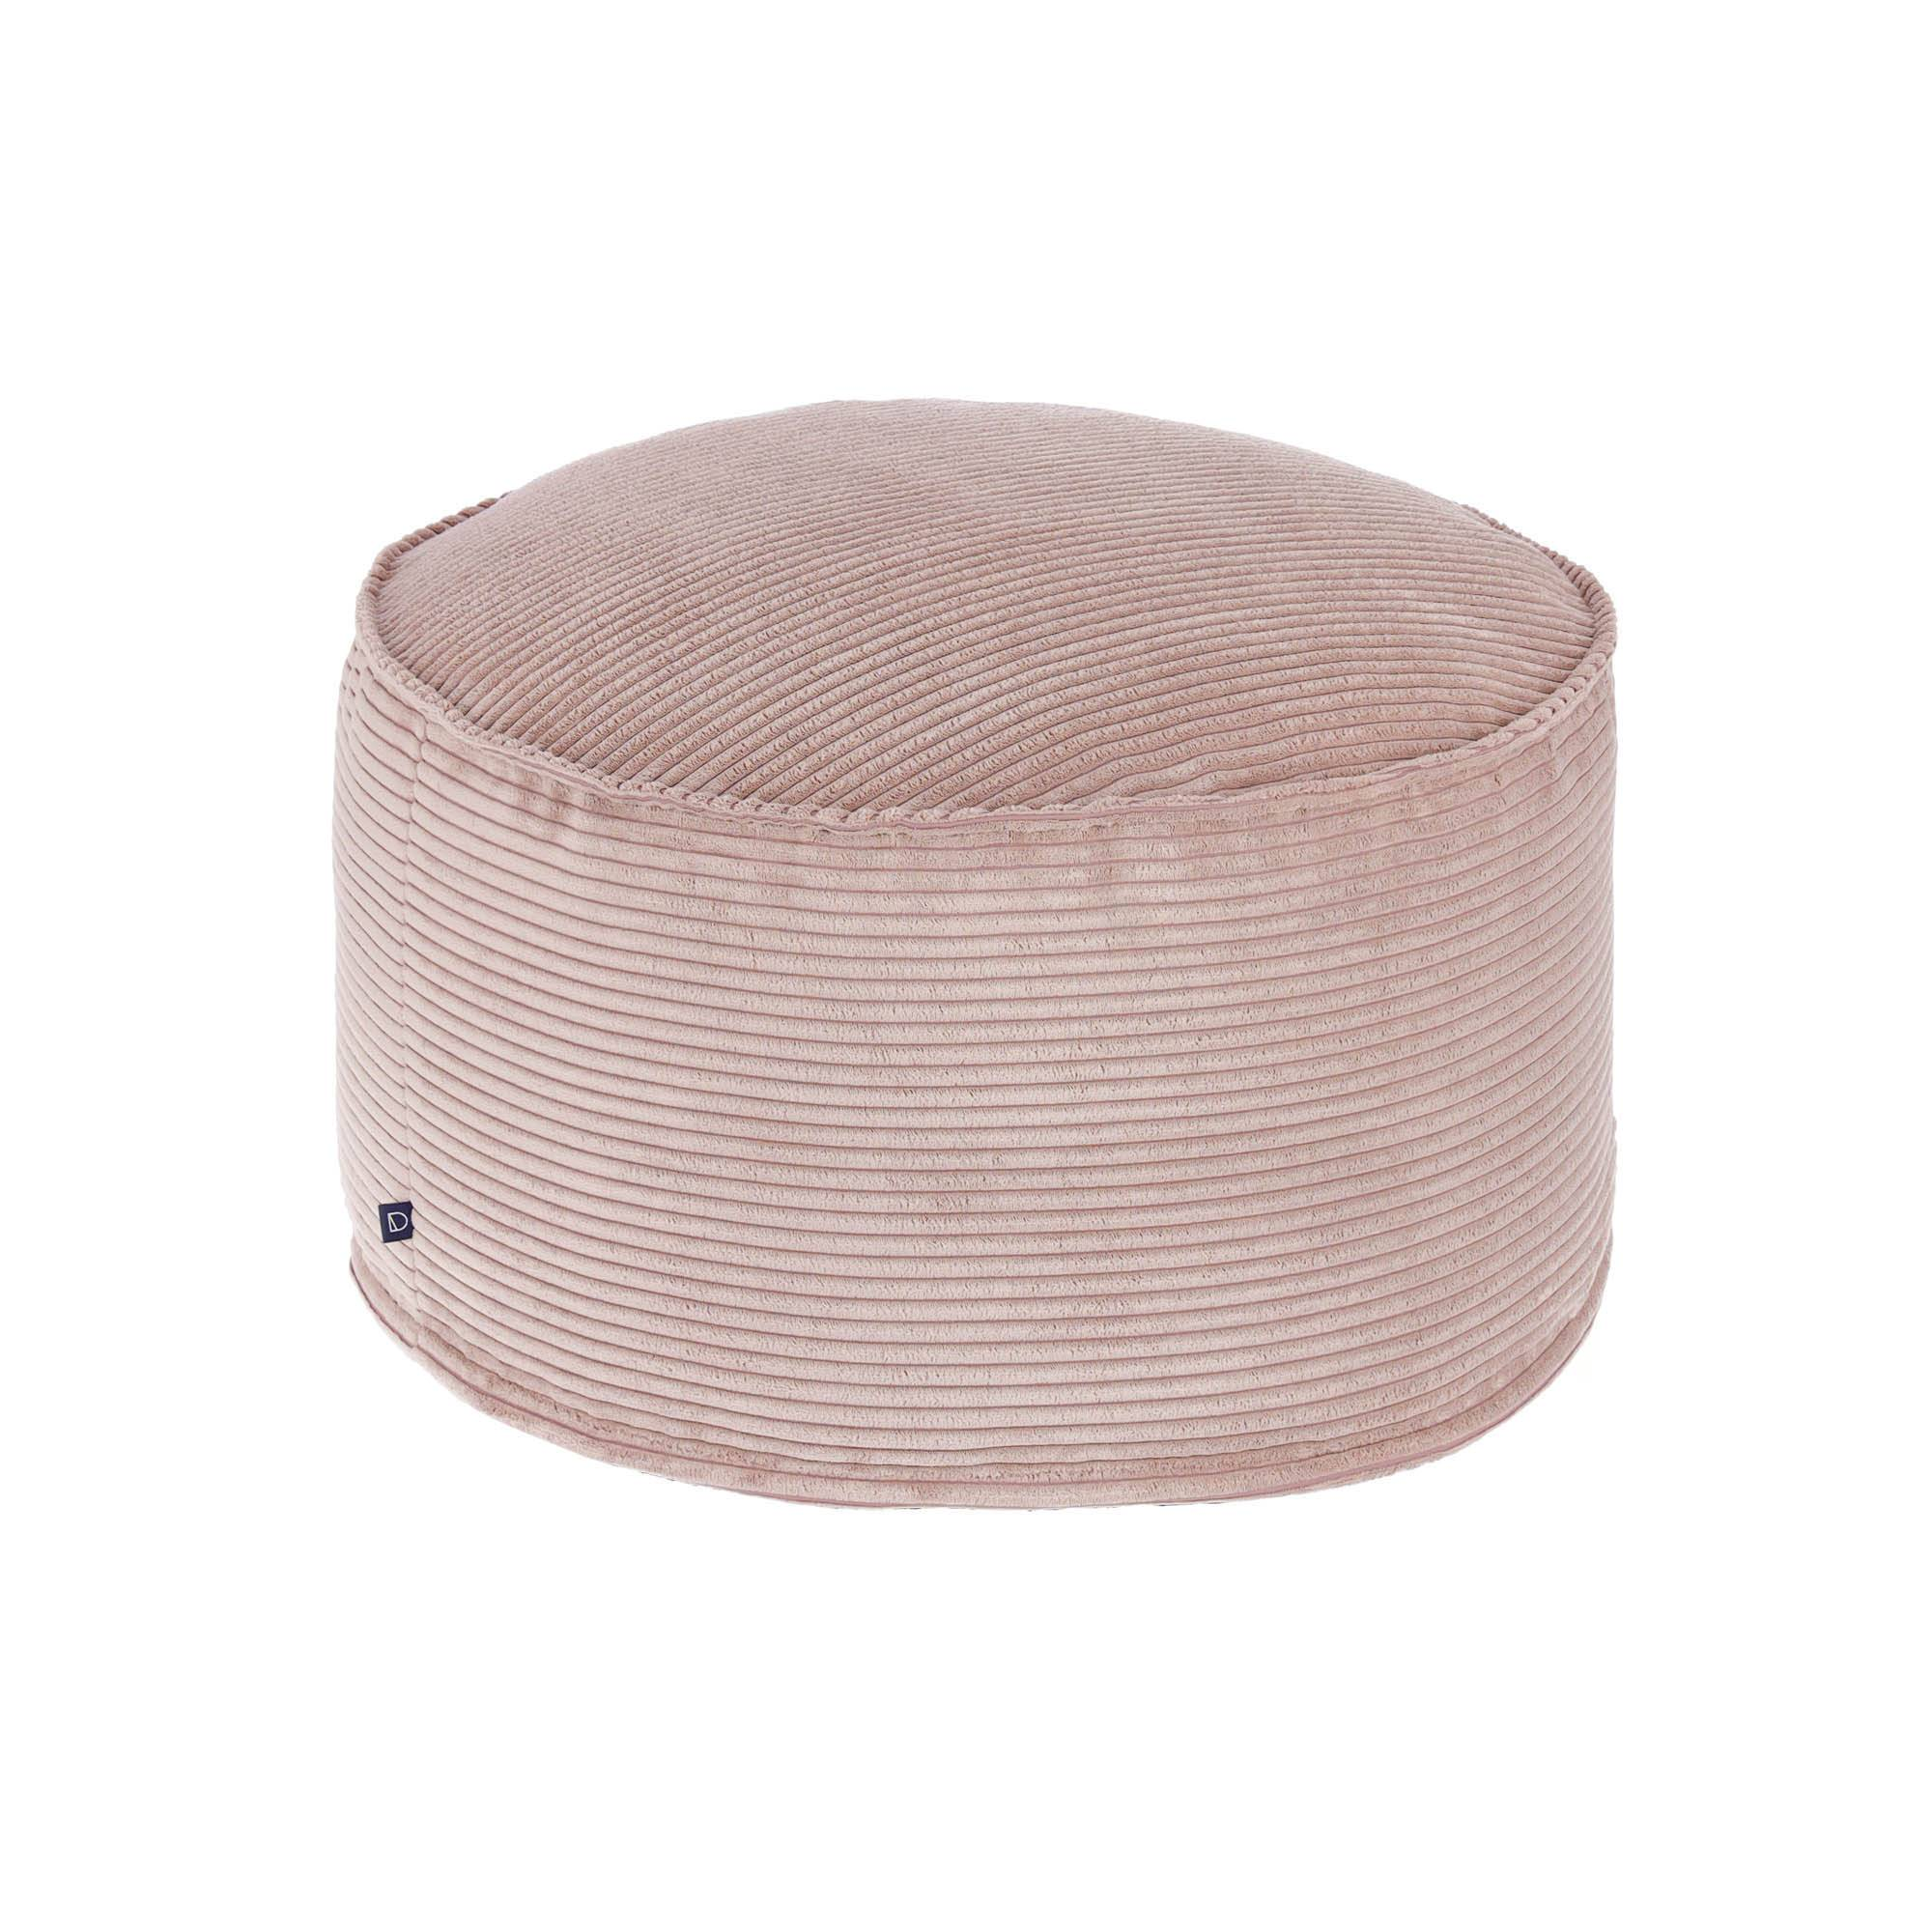 Kave Home Pouf grande Wilma Ø 70 cm velluto a coste rosa